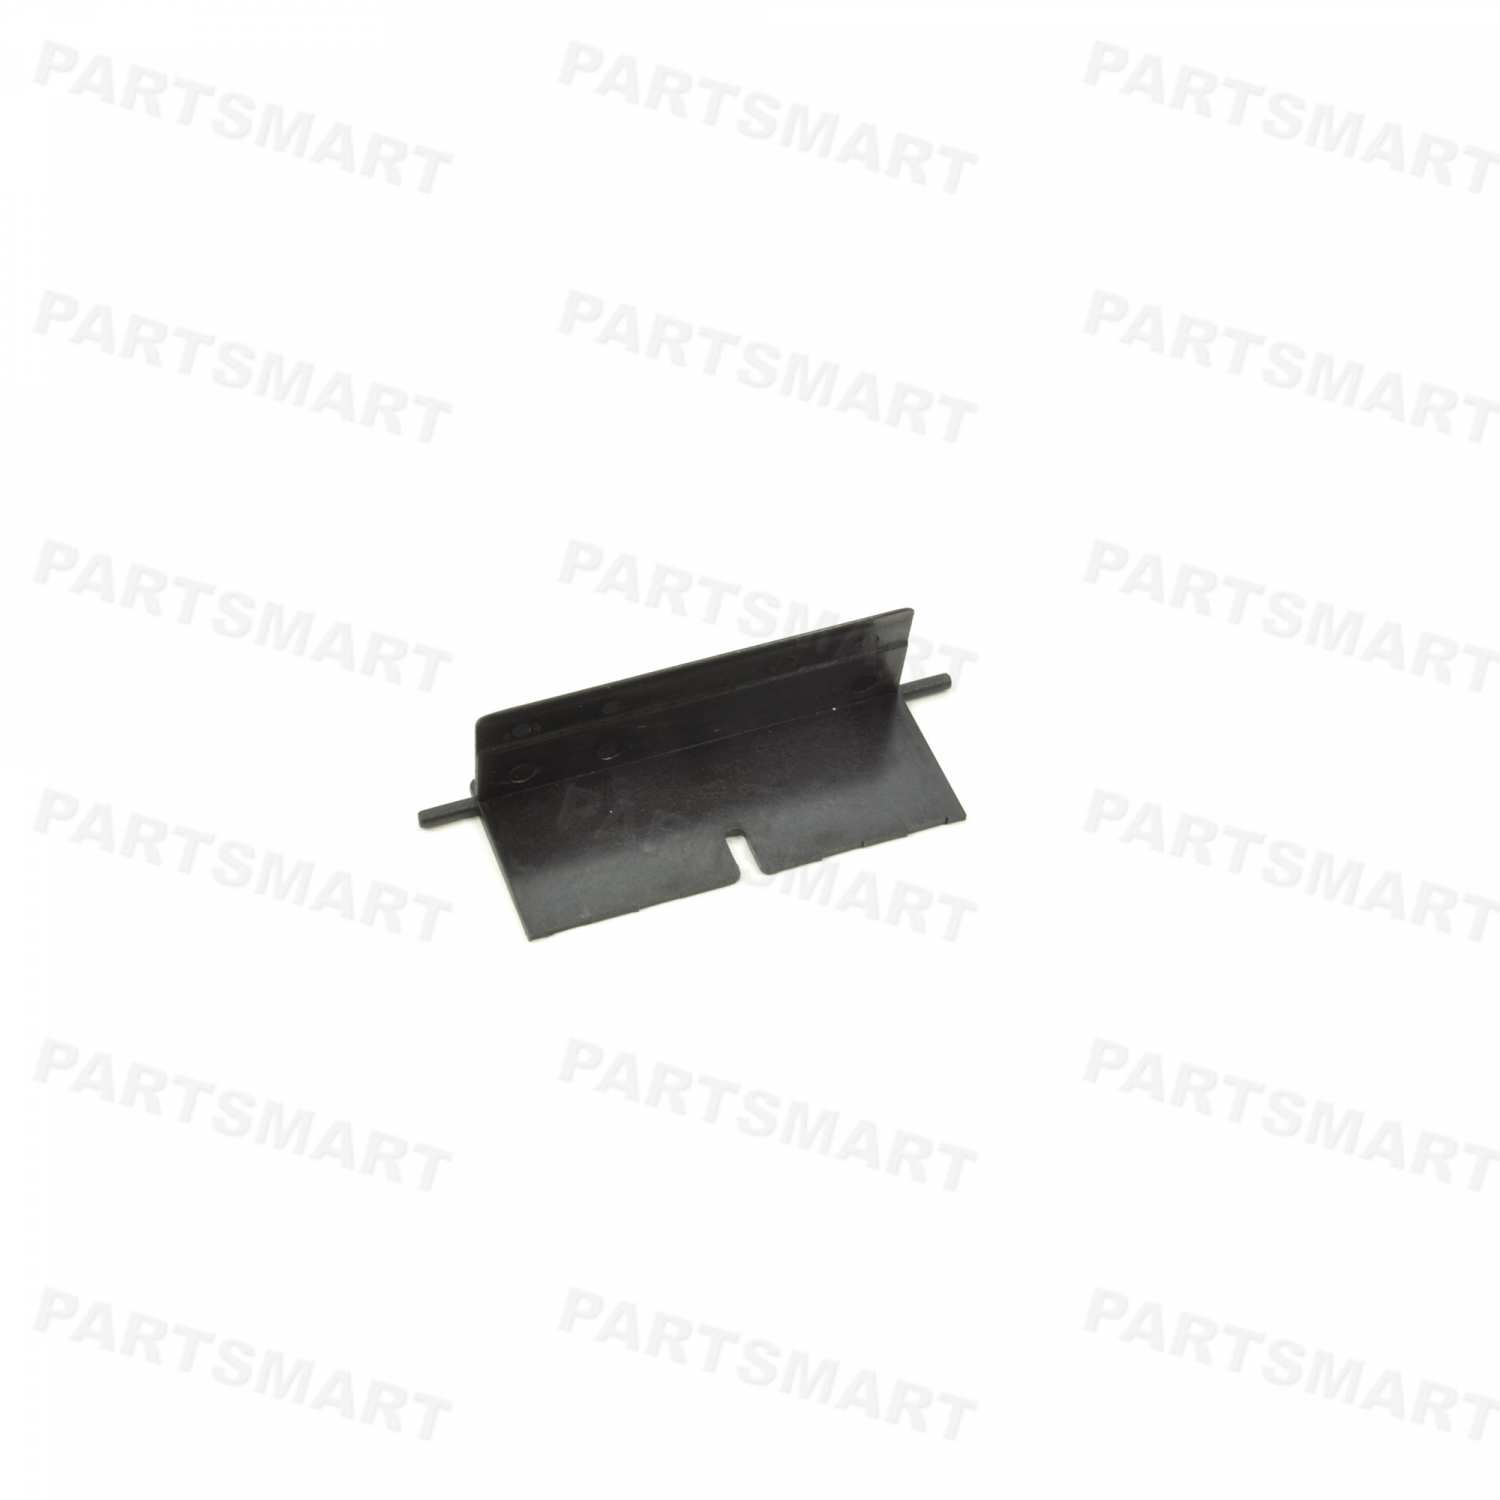 RA0-1105-000 Guide, Upper for HP LaserJet 1200, LaserJet 1300